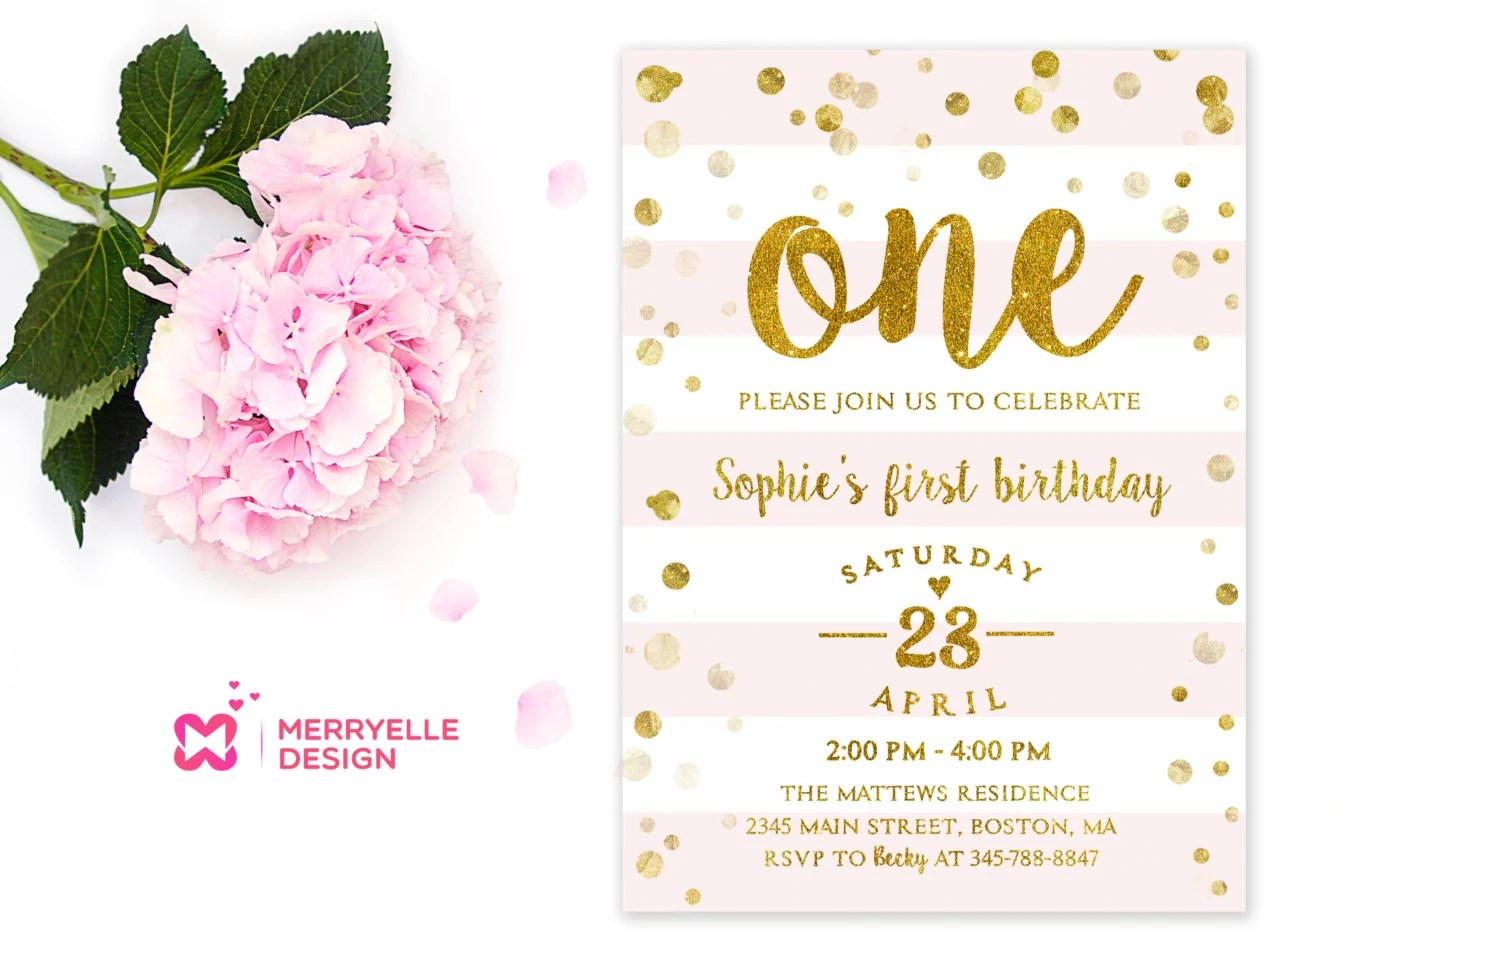 Print Custom 5x7 Invitations